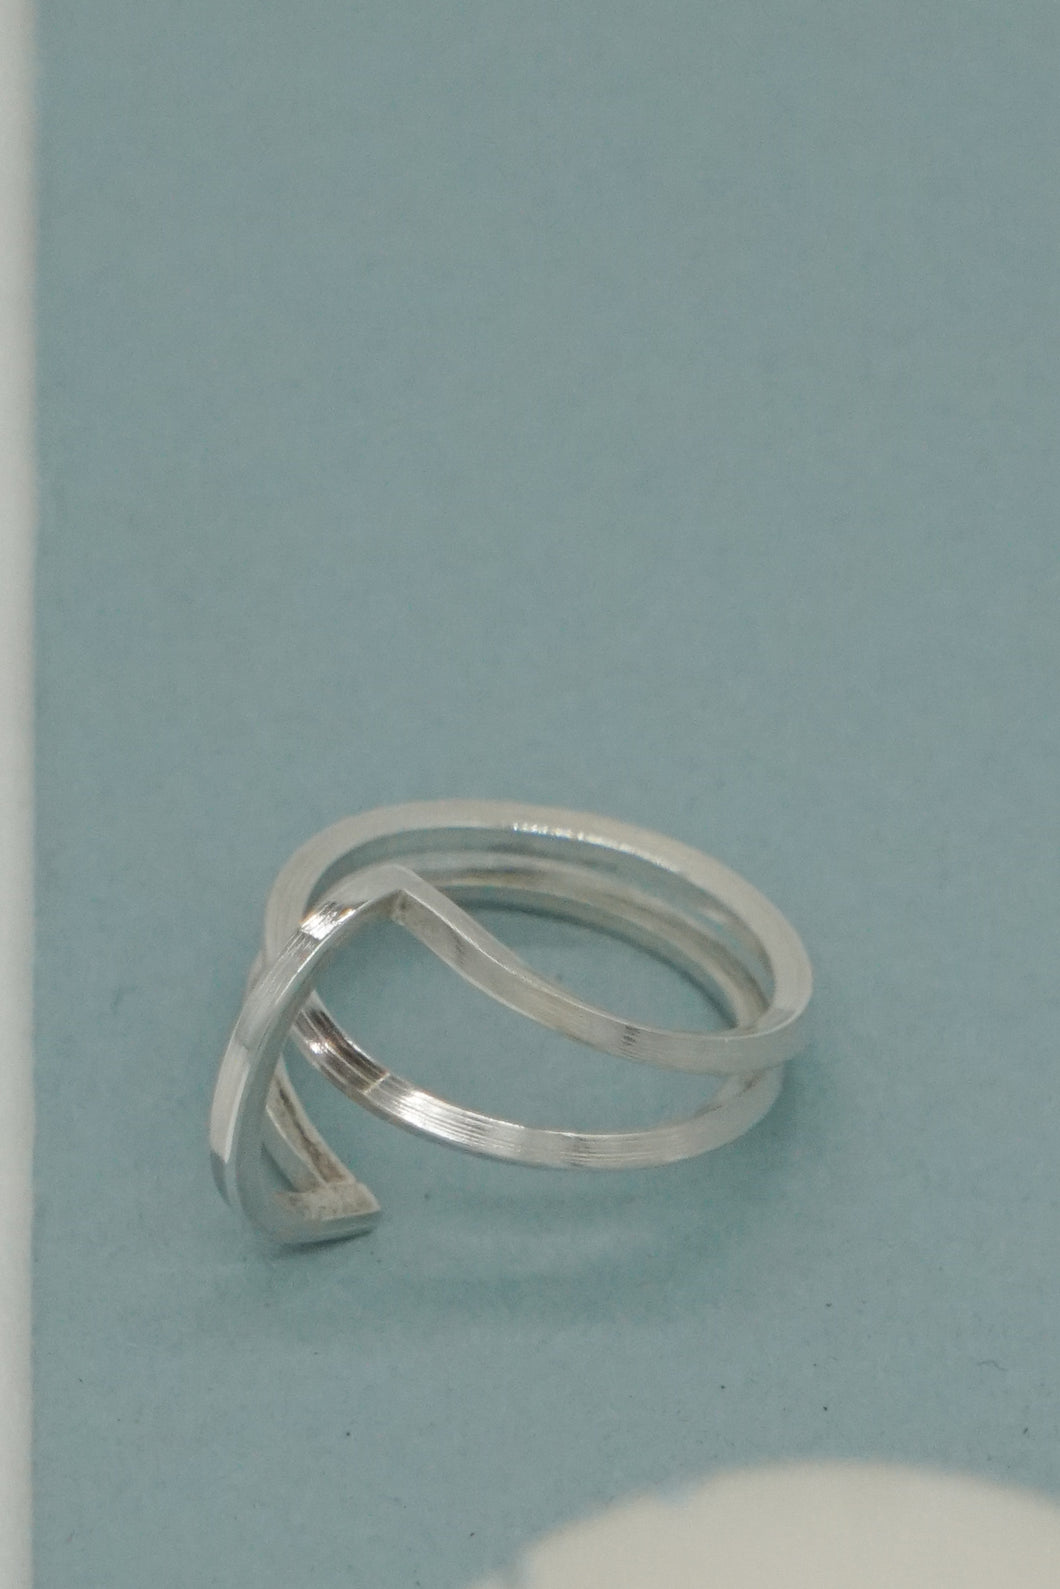 The Arc ring